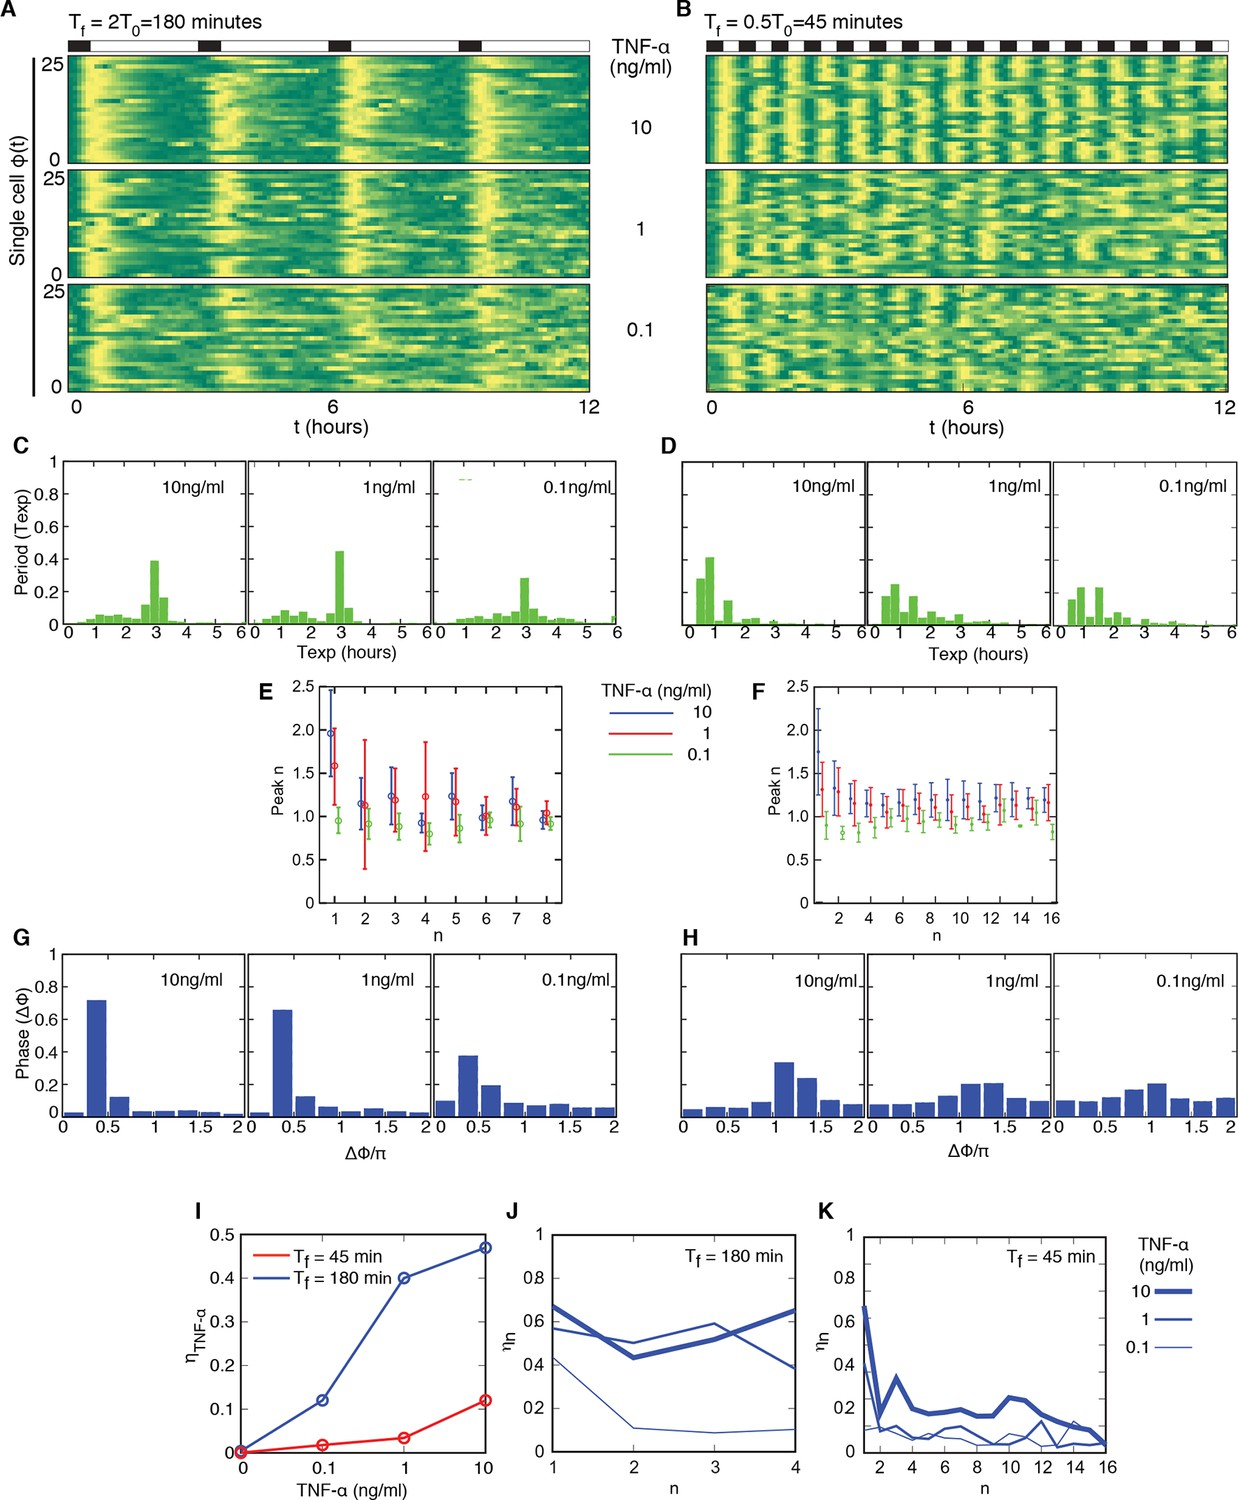 Nf B Oscillations Translate Into Functionally Related Patterns Of Inductive Proximity Sensor Comprising A Resonant Oscillatory Circuit Cells Adjust To Different Periods For Wide Range Forcing Amplitudes